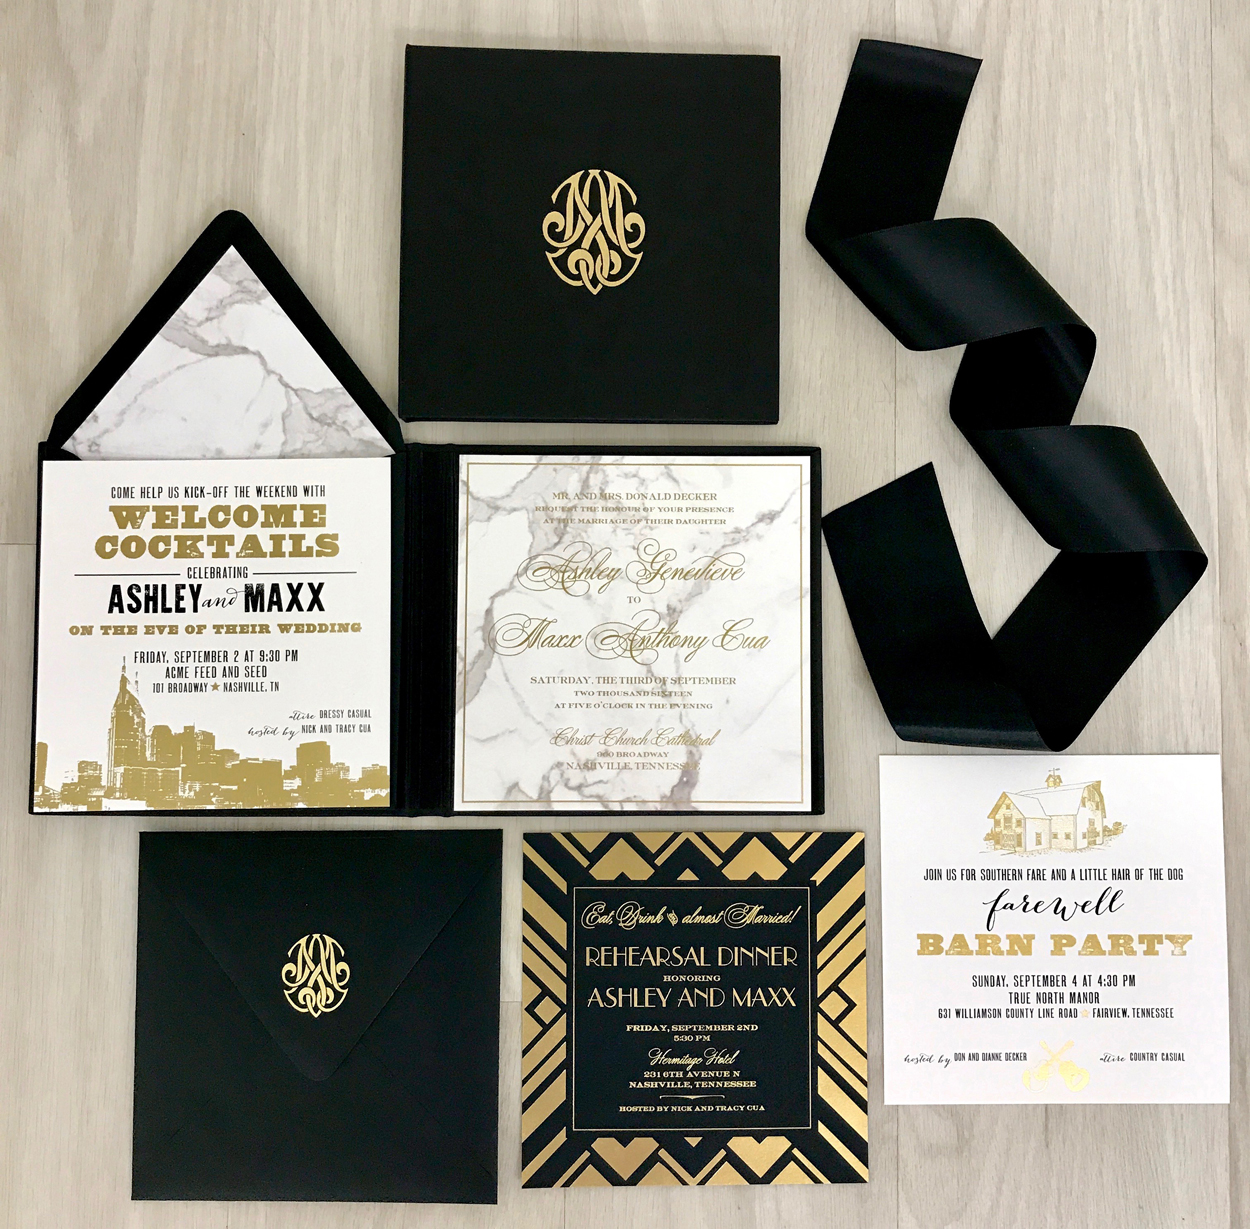 Wedding invitation with marble stationery pattern black and gold details